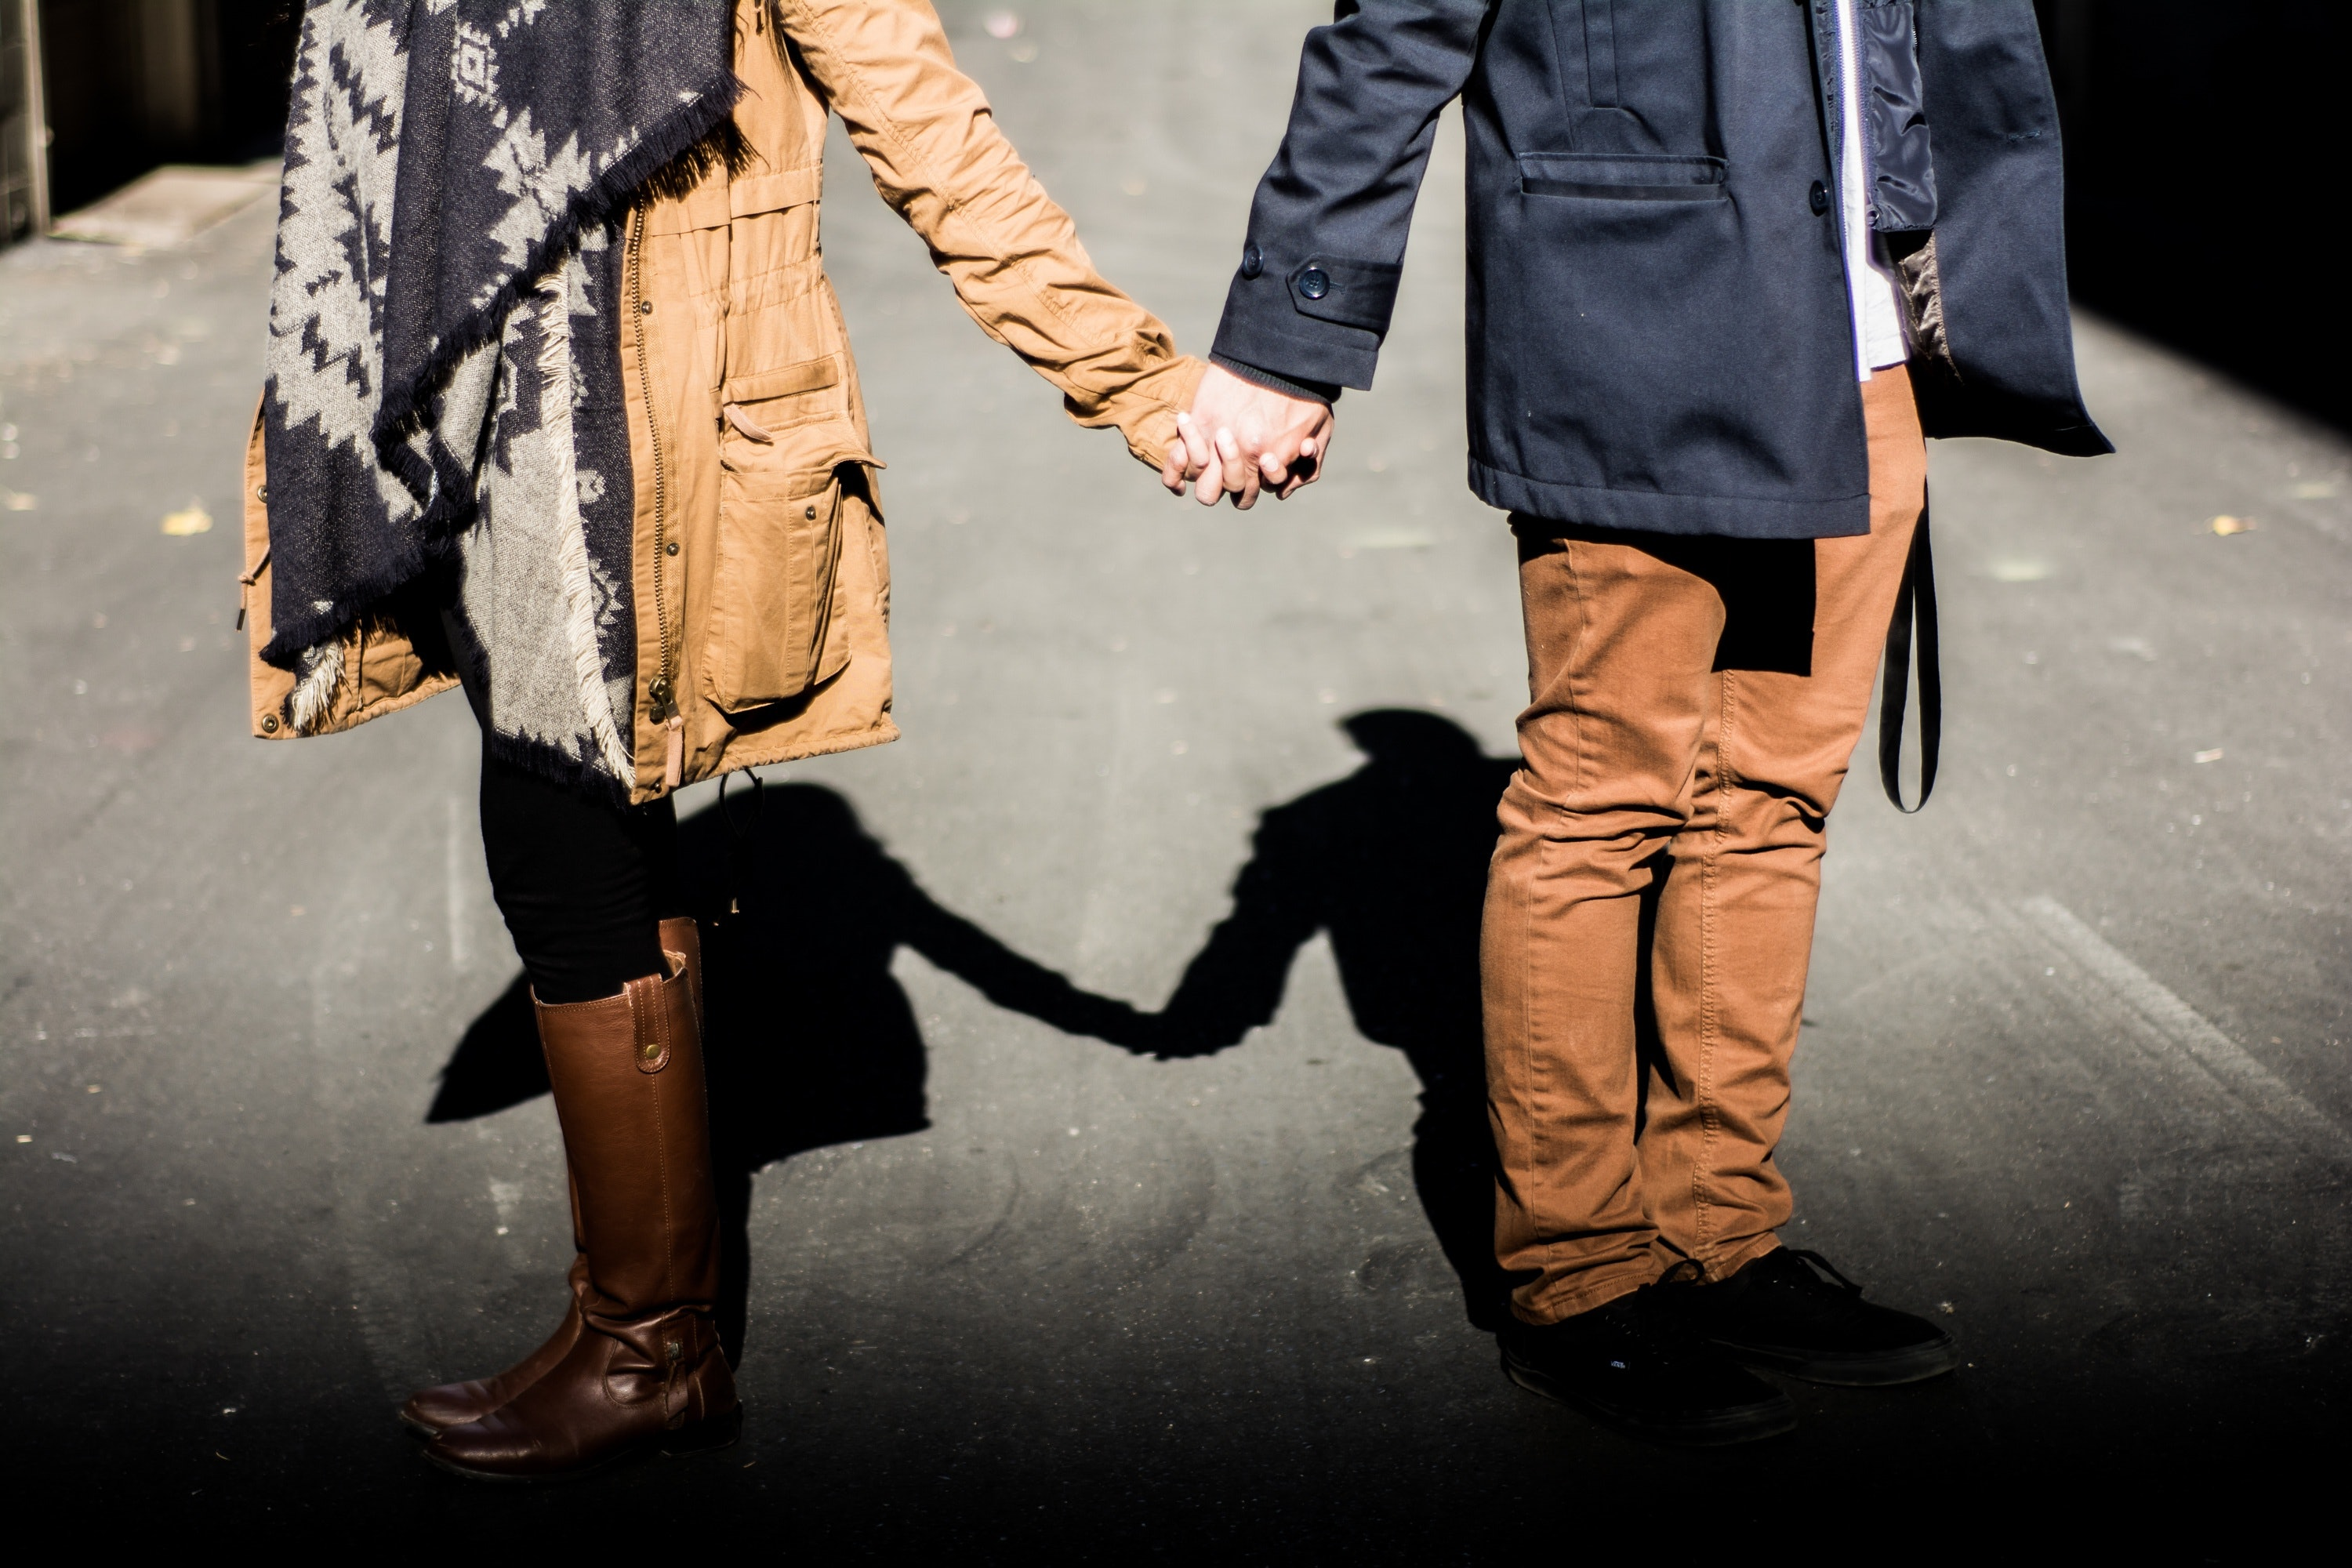 How ensure your relationship stays completely drama free